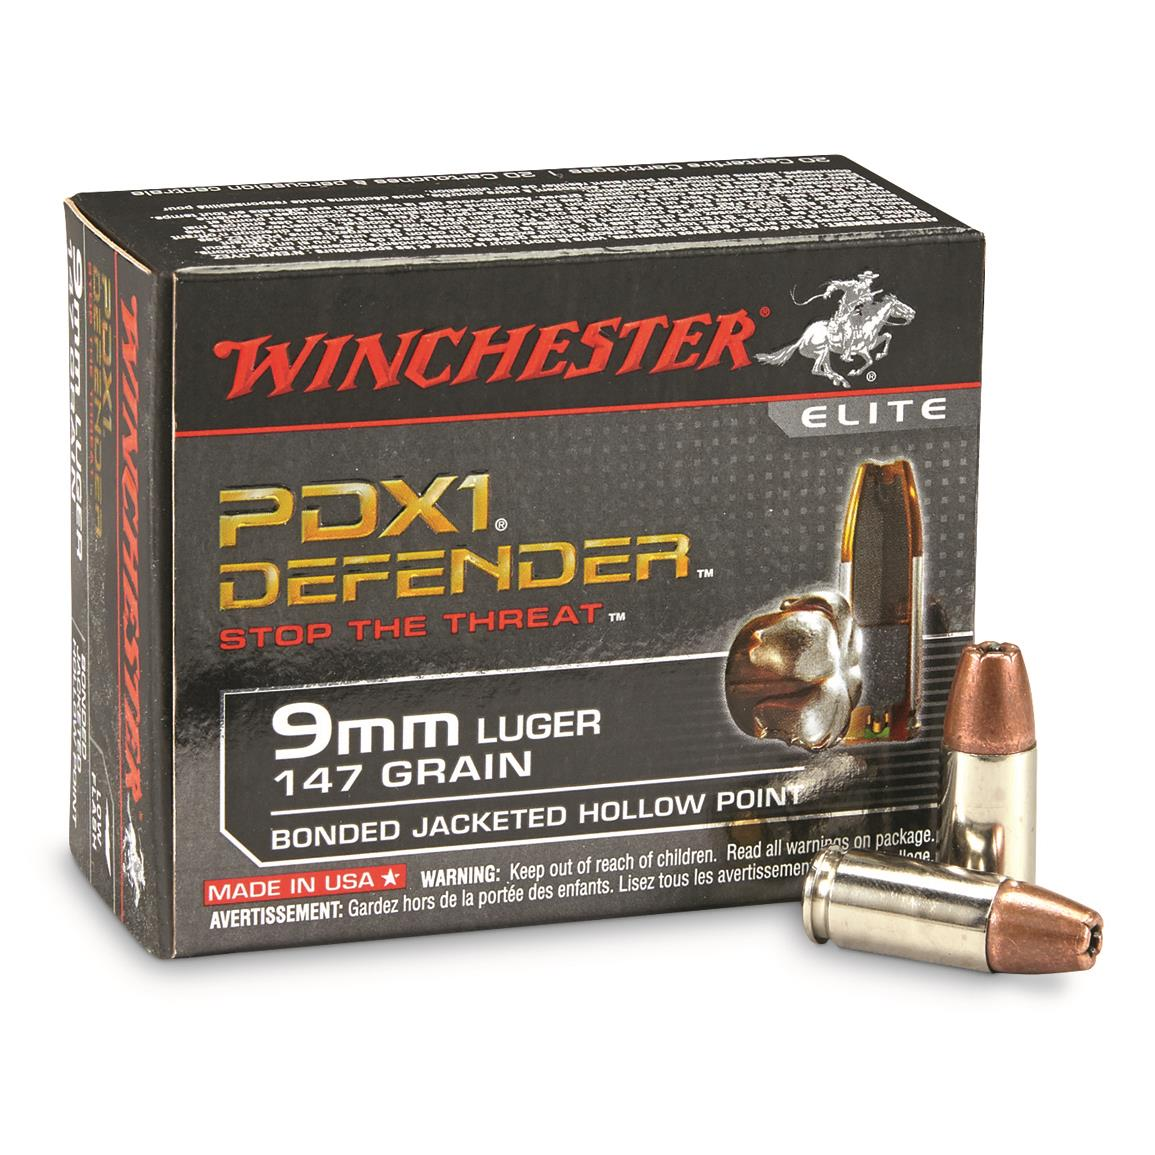 Winchester Defender, 9mm Luger, Bonded Jacketed Hollow Point, 147 Grain, 20 Rounds